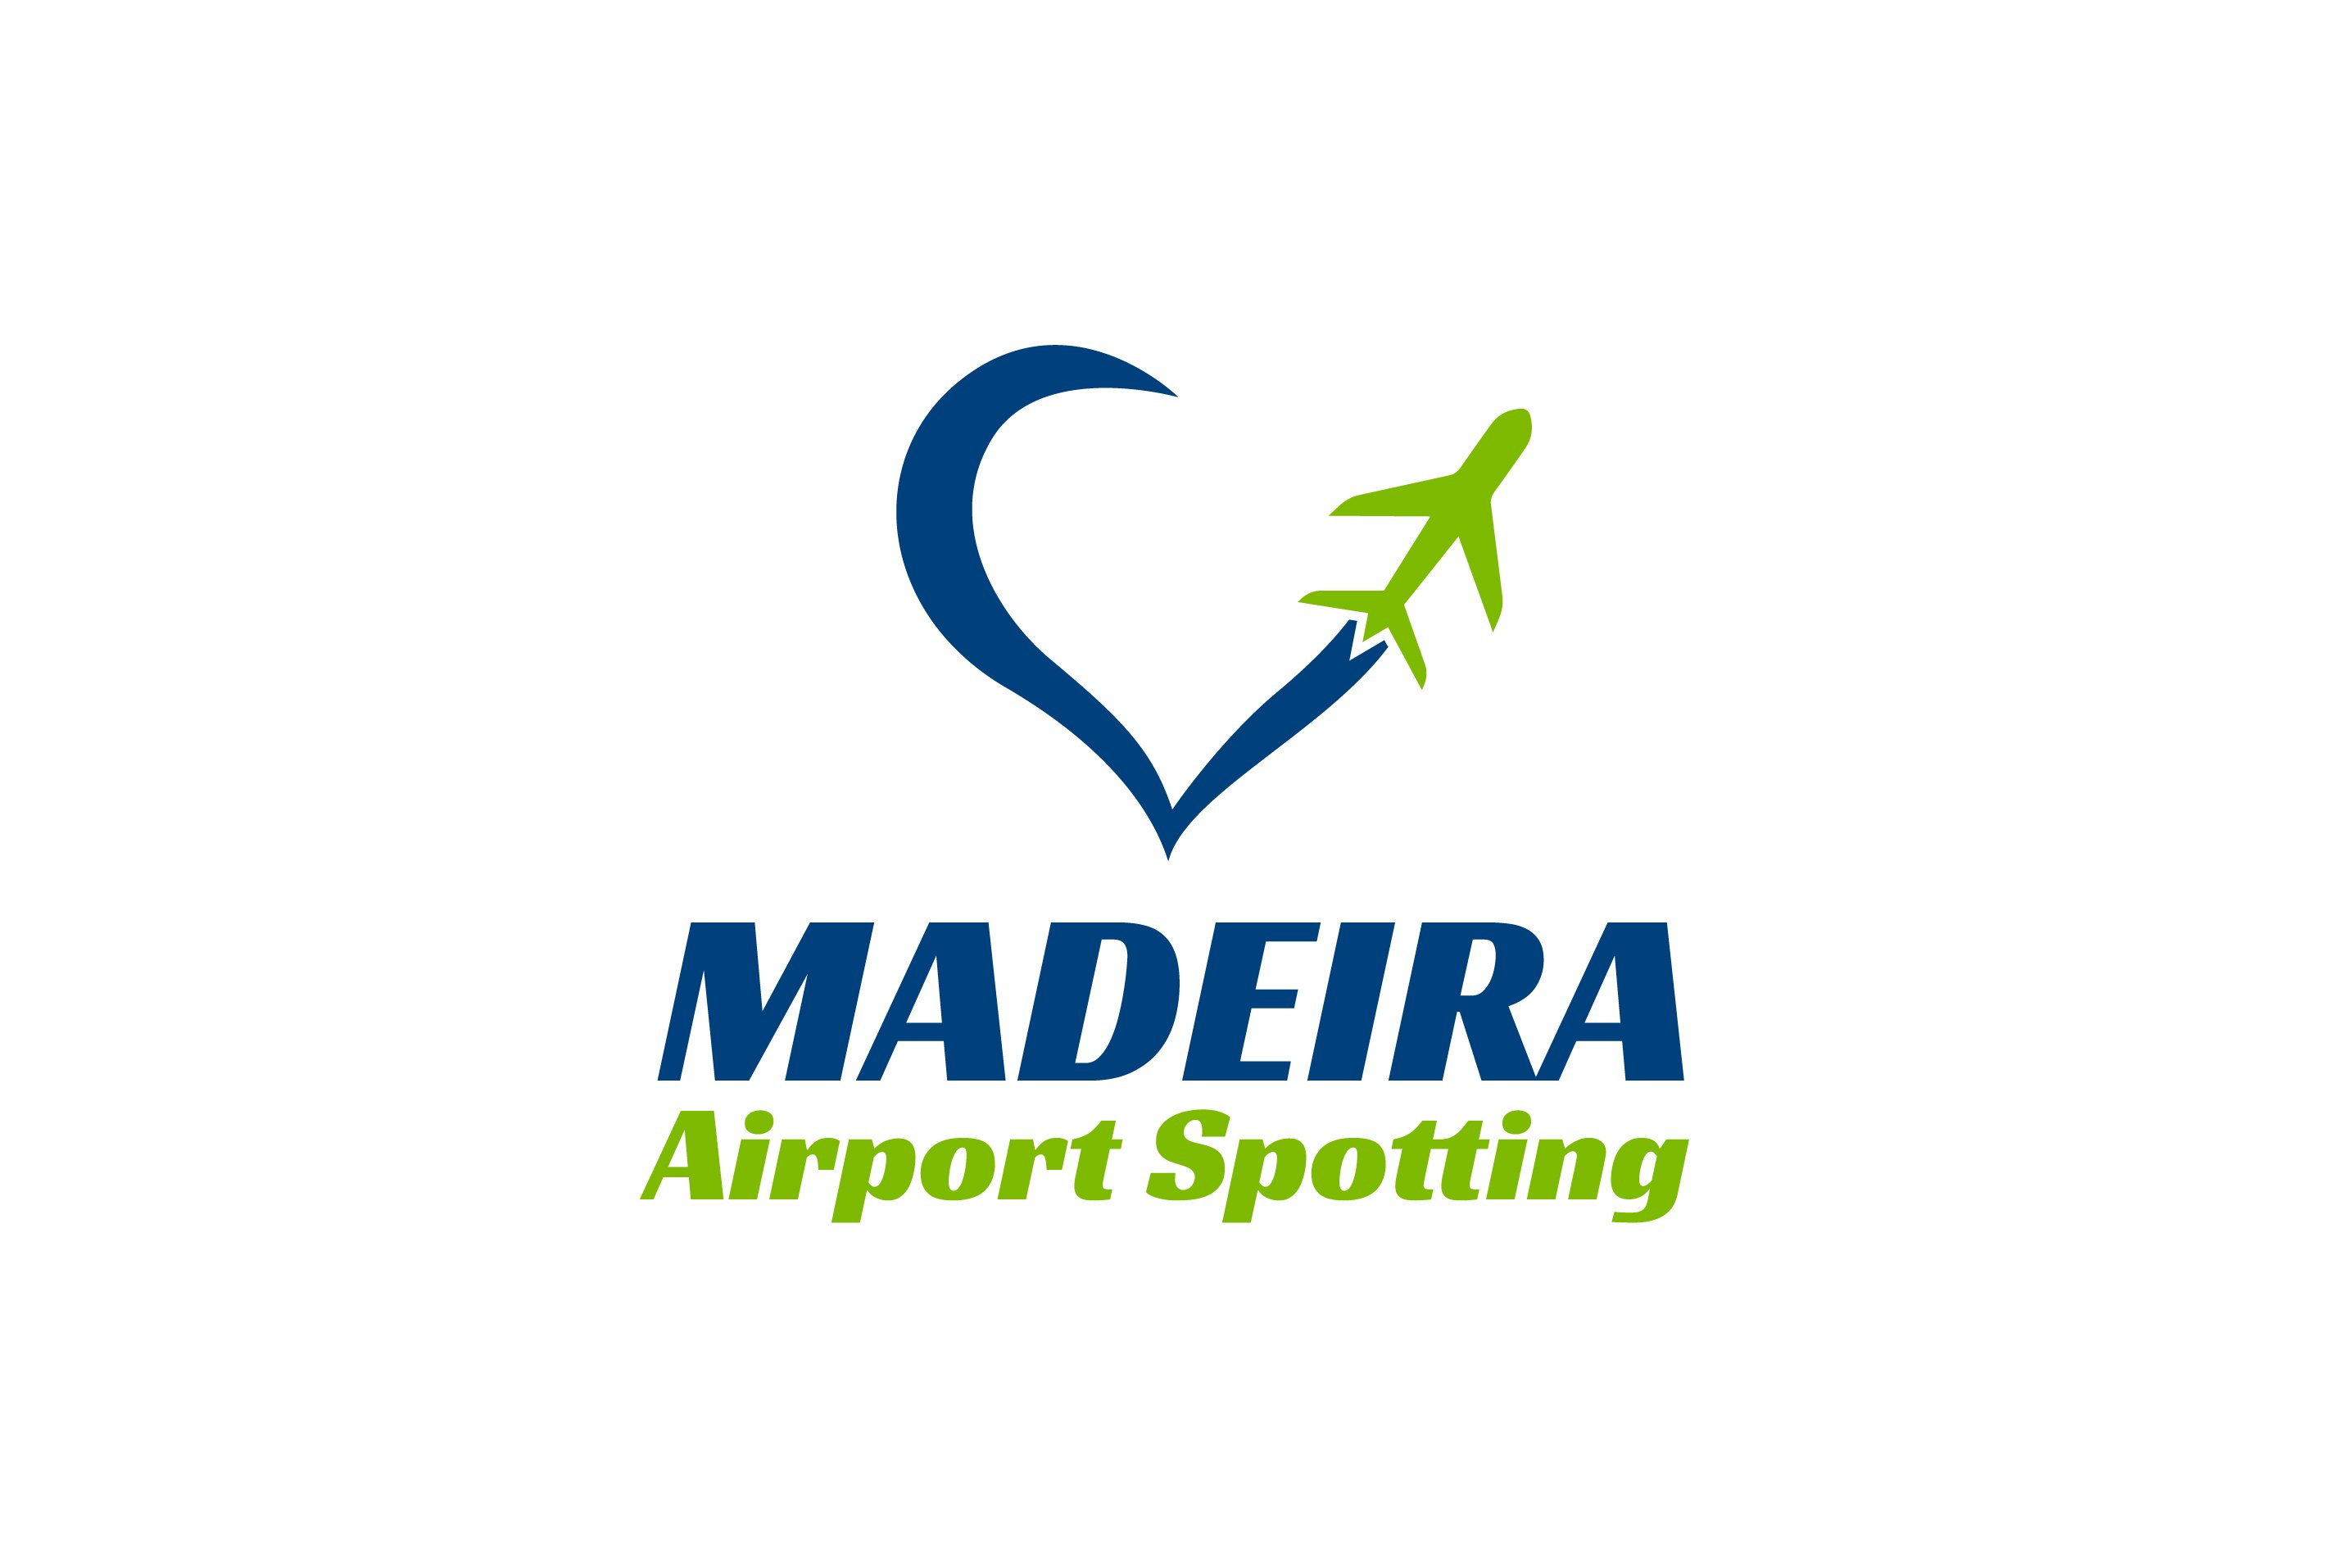 Madeira Airport Spotting